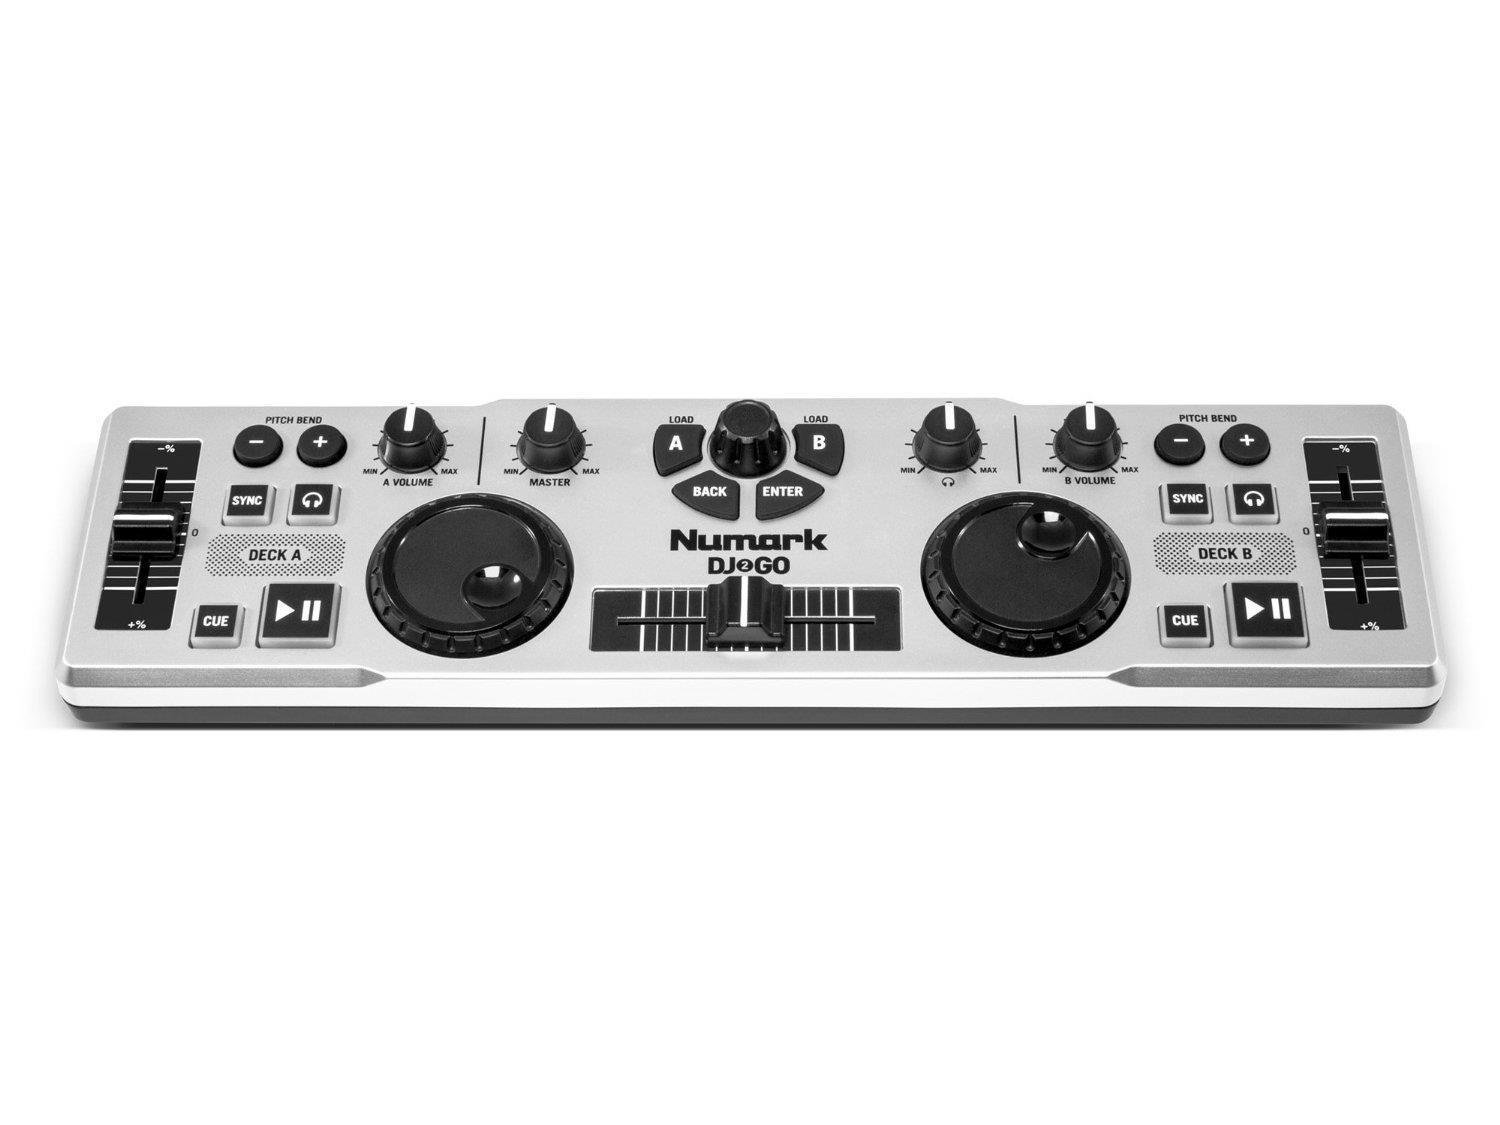 10 Best Affordable Professional DJ Controllers for iPad 2018-2019 on